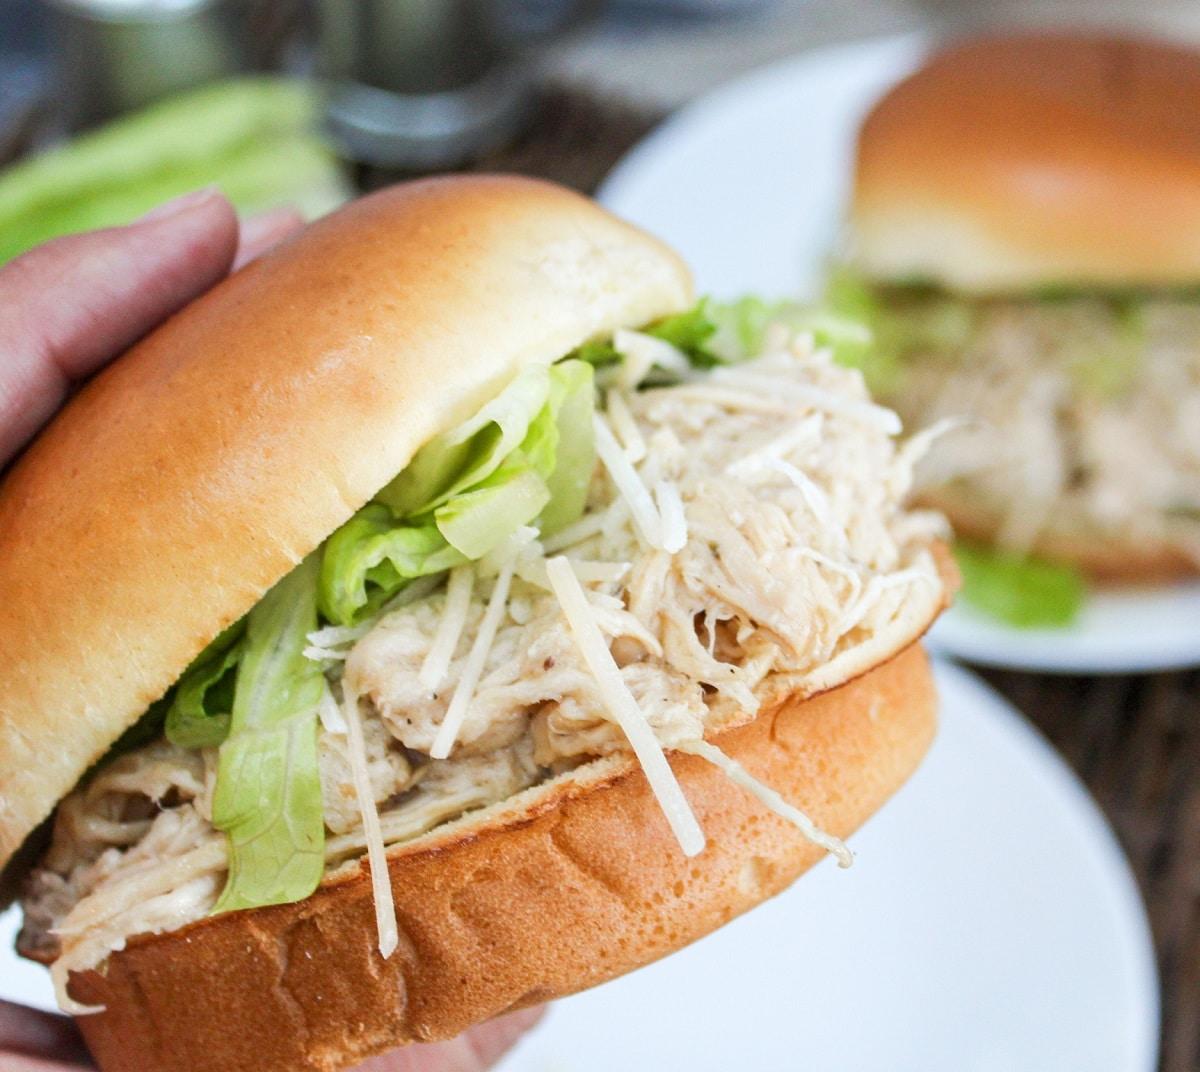 chicken on a bun with lettuce and cheese held in hand